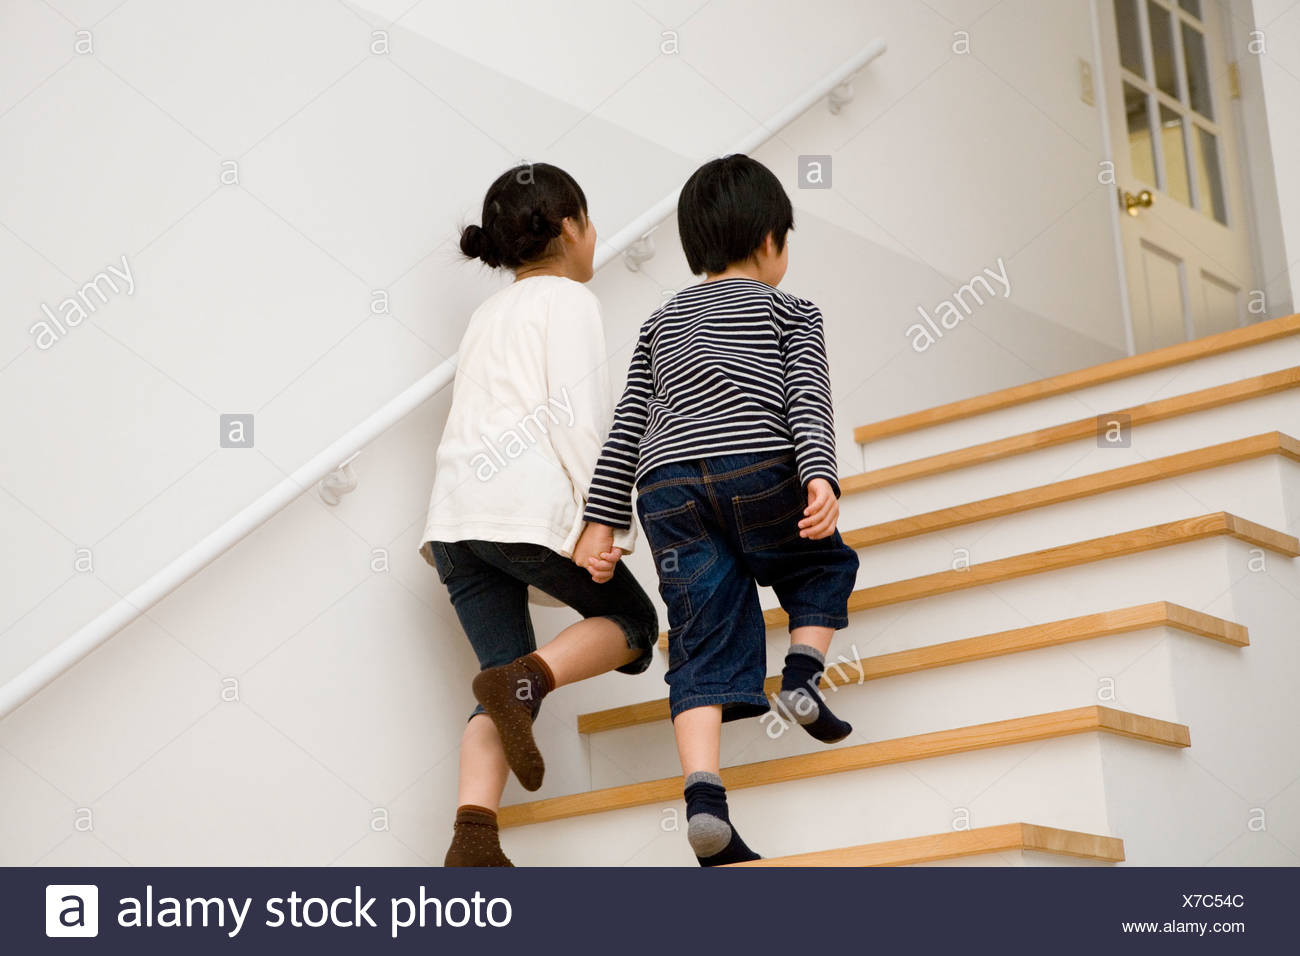 Two Kids Climbing Up Stairs Together